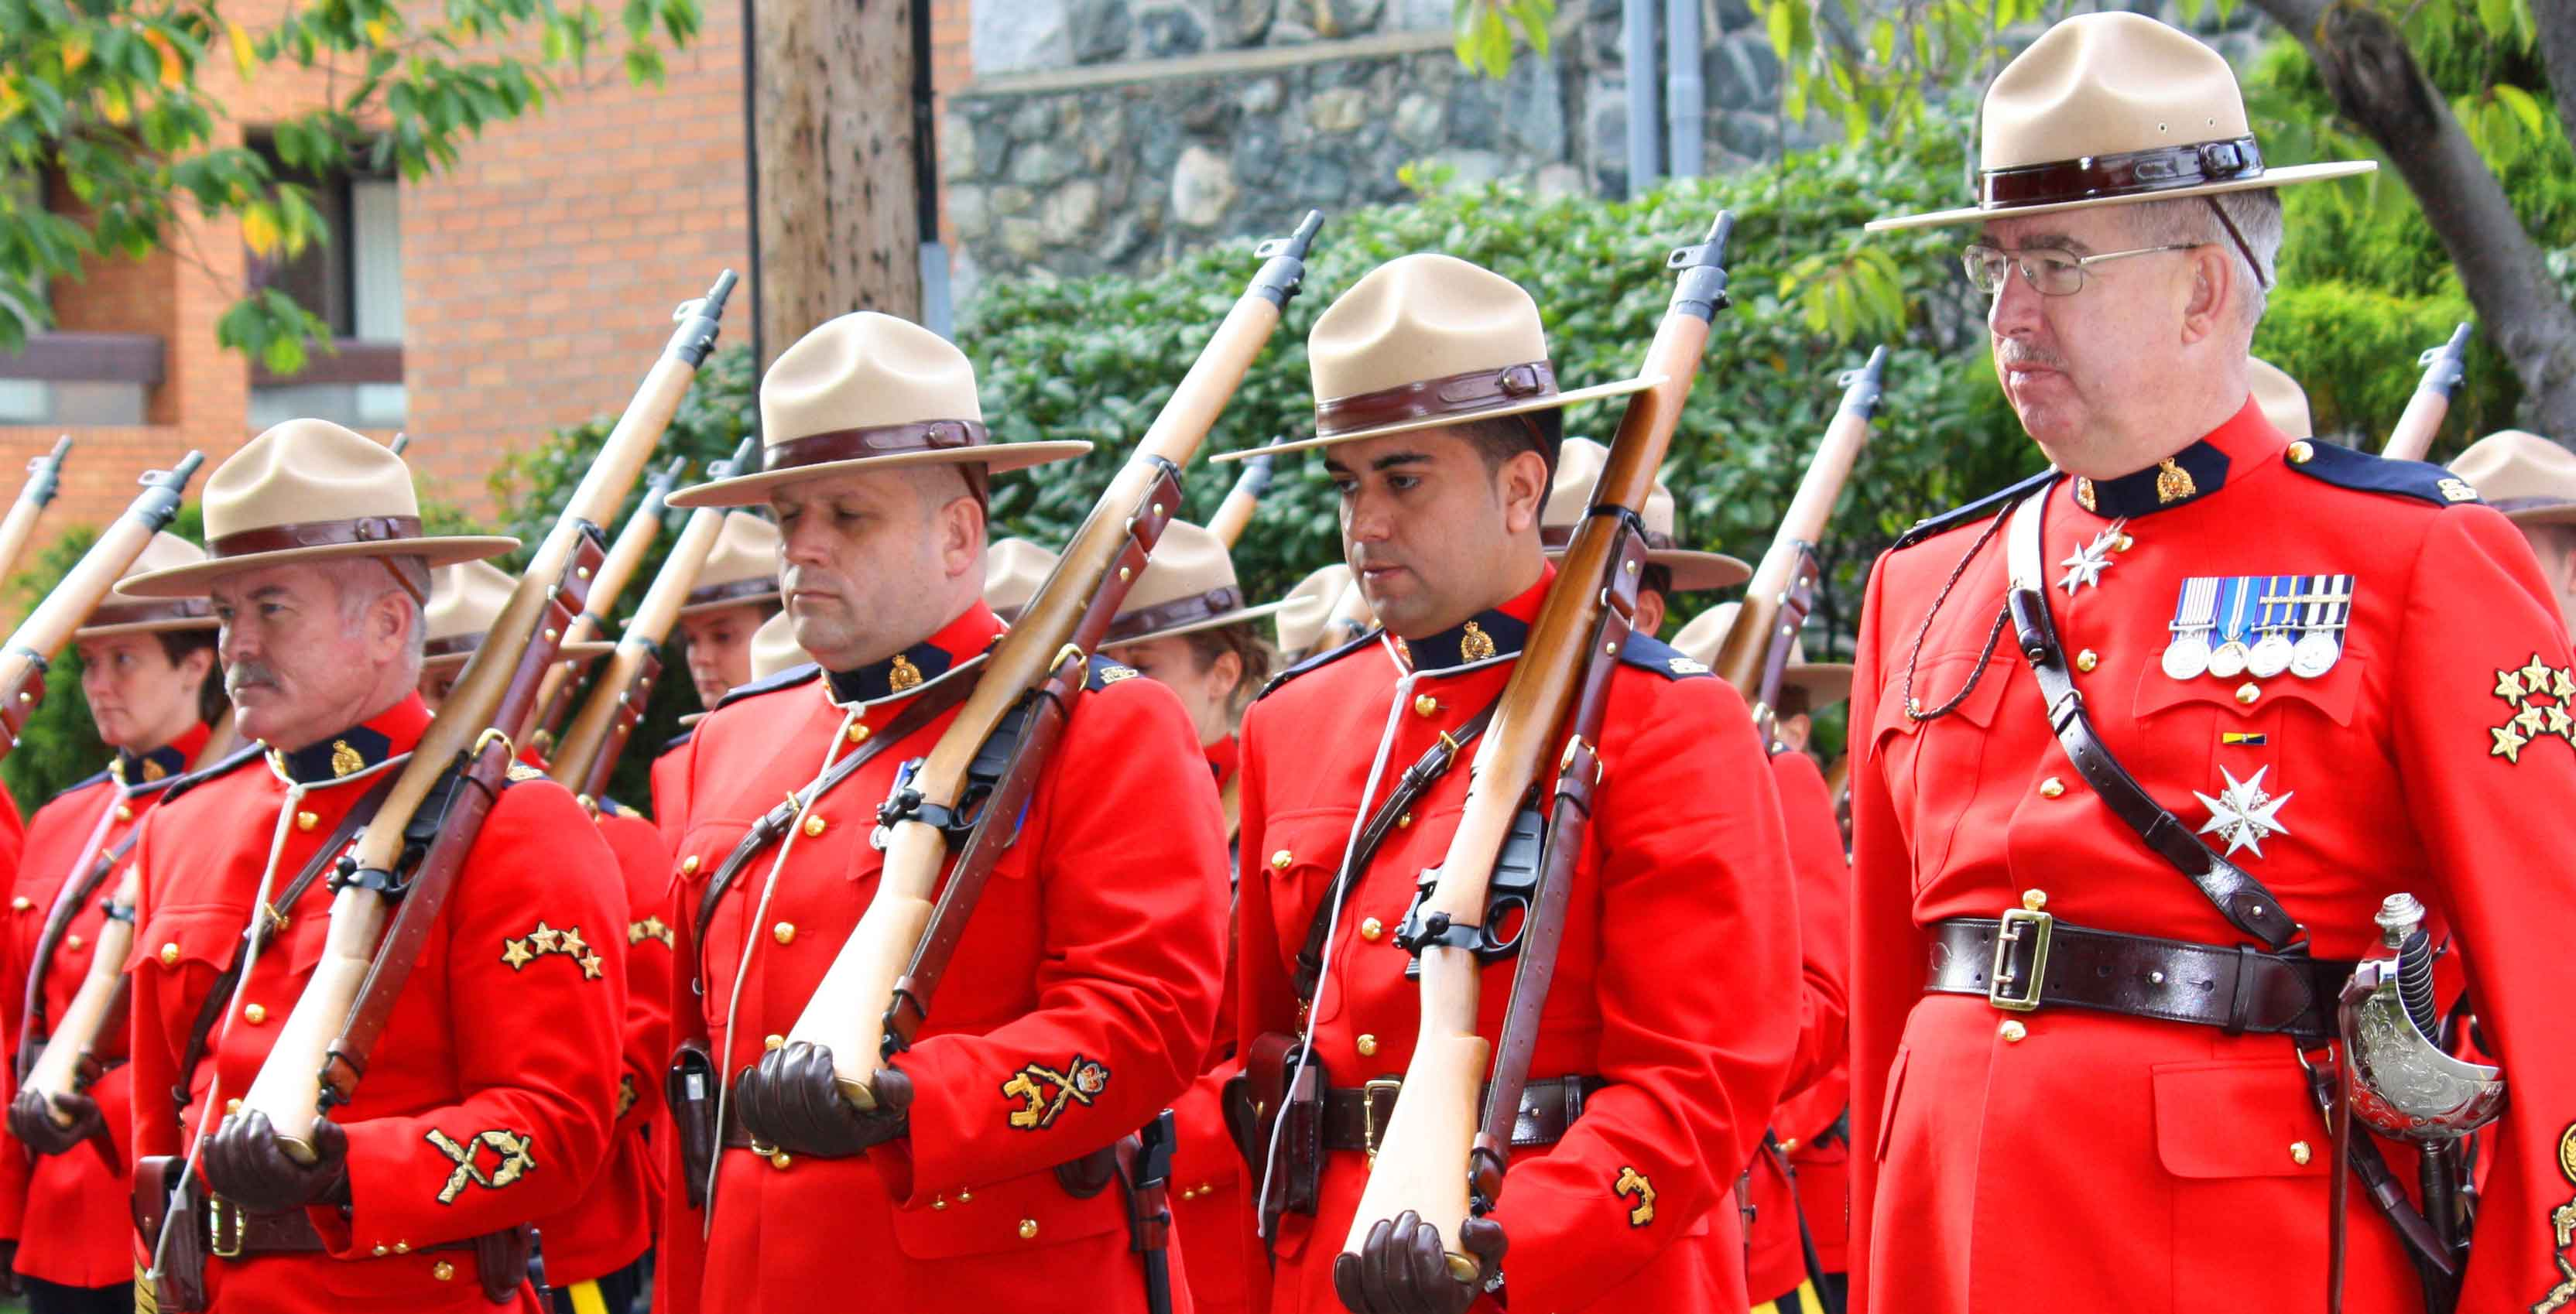 An image of uniformed RCMP officers